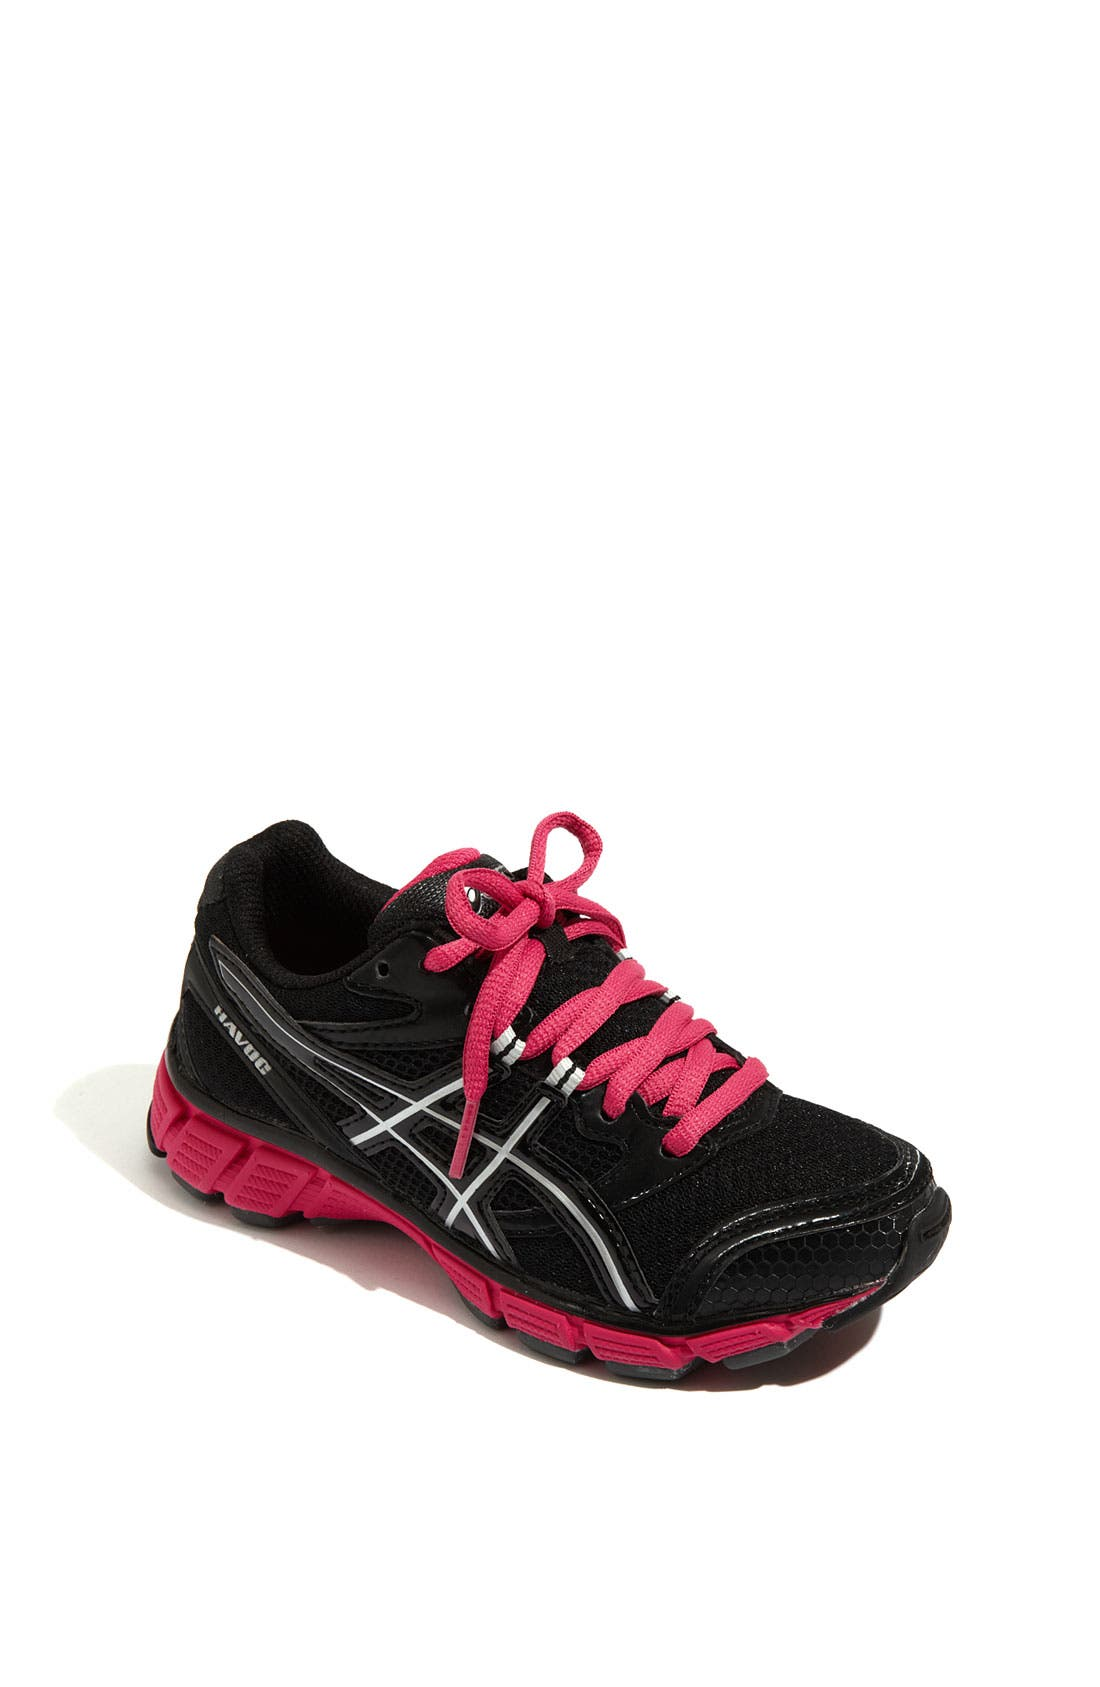 Alternate Image 1 Selected - ASICS®  'Havoc' Running Shoe (Little Kid & Big Kid)